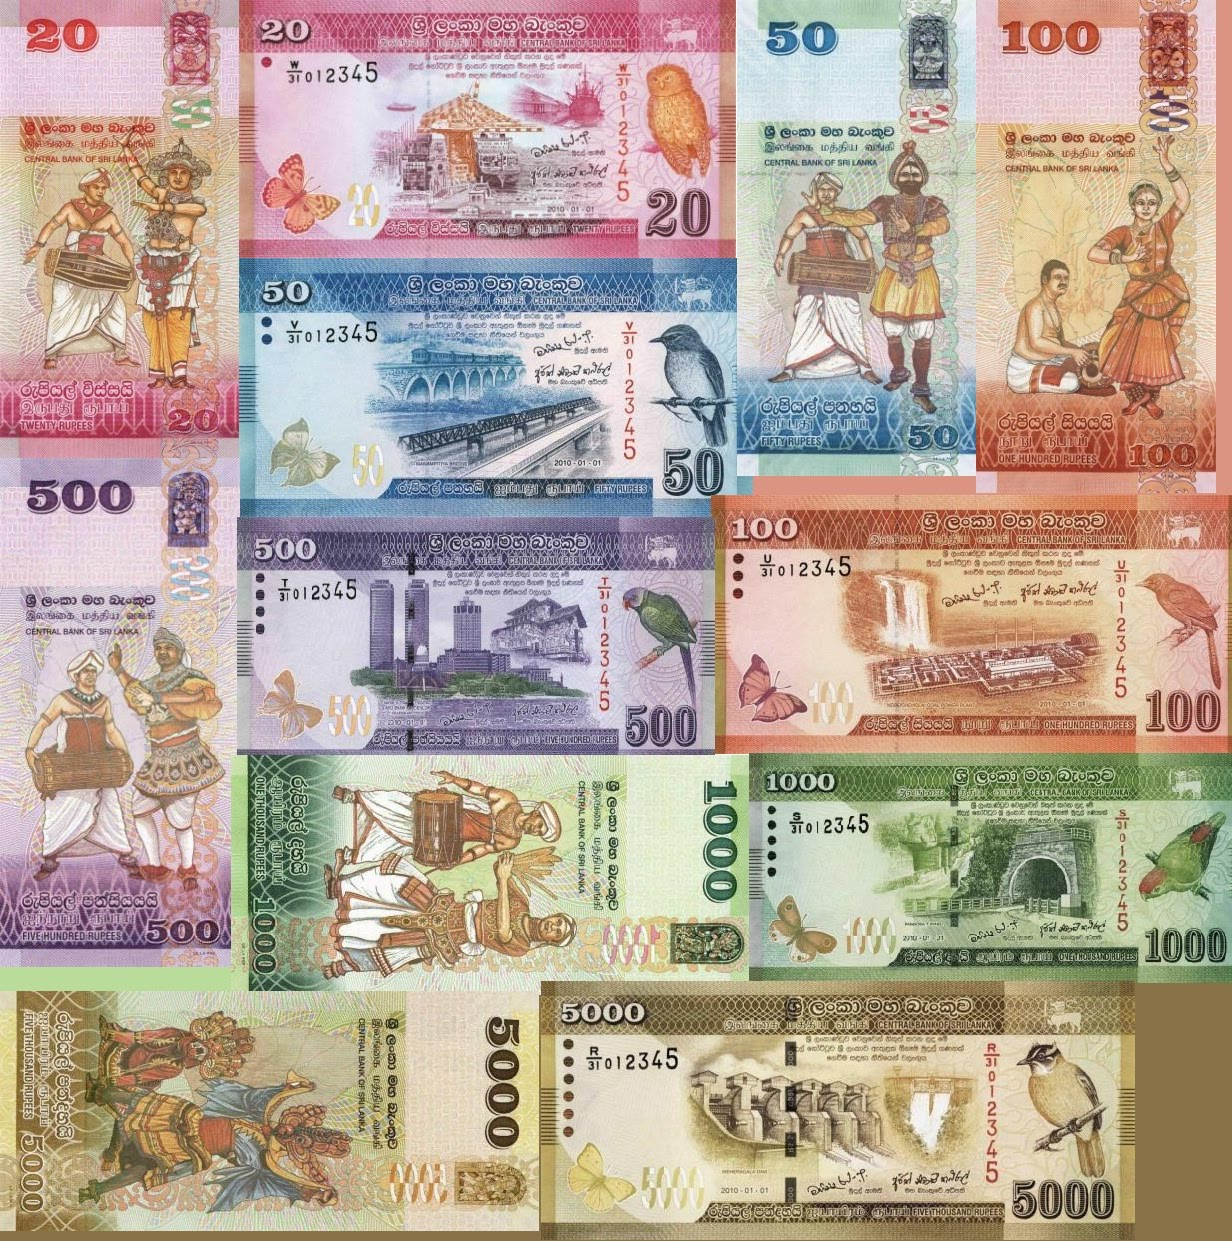 Colombo June 28 Sri Lanka S Ru Recovered On Friday From An Over Seven Month Low As Banks Sold Dollars To Cover Their Short Positions In Rus